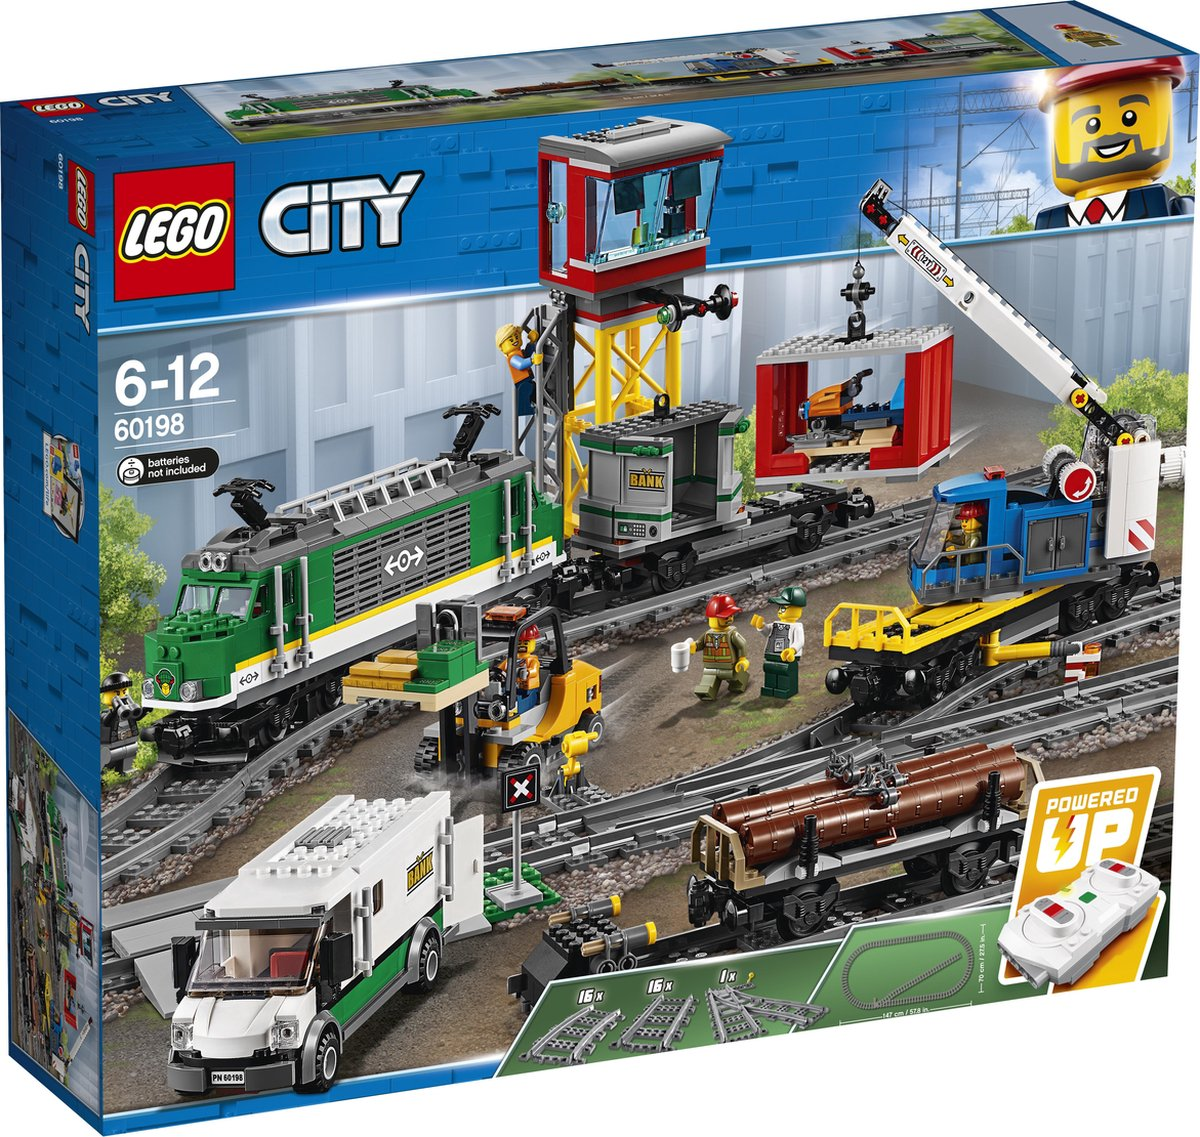 LEGO City Treinen Vrachttrein – 60198